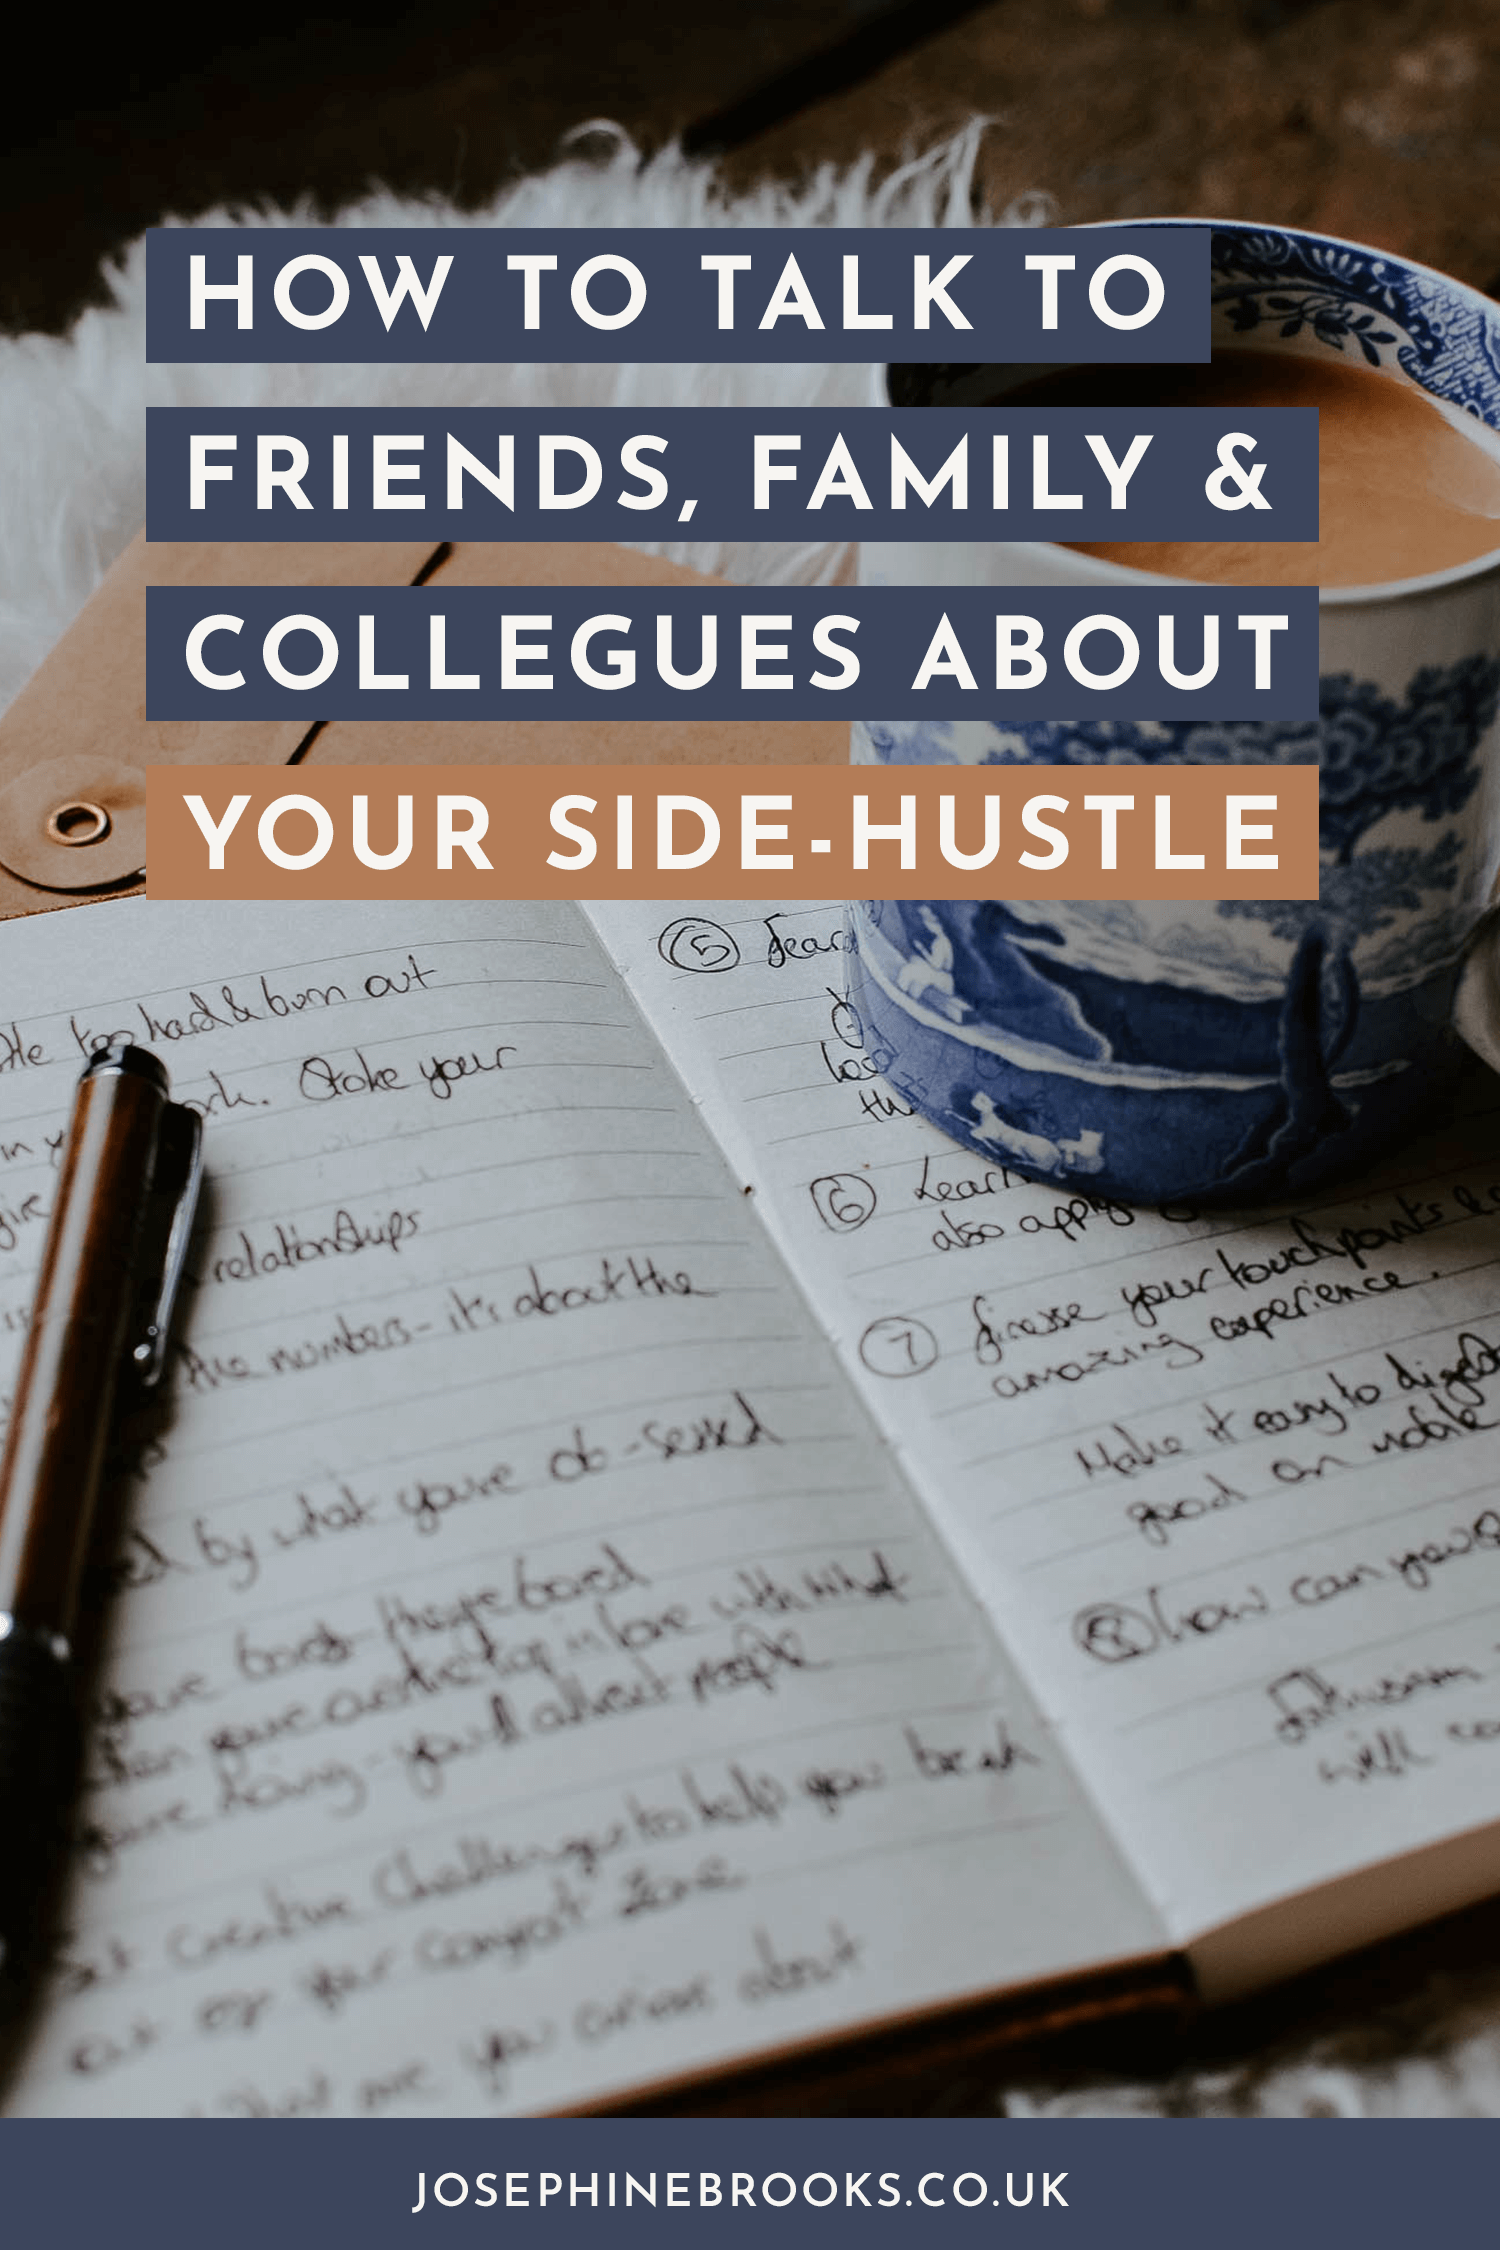 How to talk to friends, family and collegues about your side-hustle , How to grow my side-hustle, How to market my side hustle, Making a marketing plan for my side hustle | Josephine Brooks